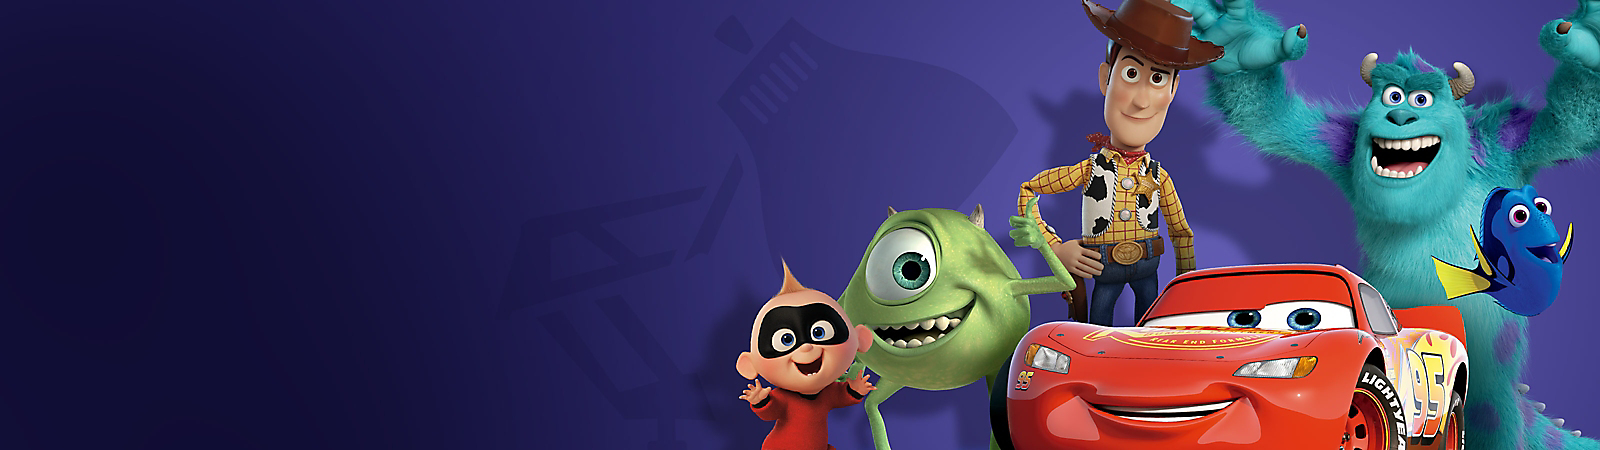 Background image of PIXAR